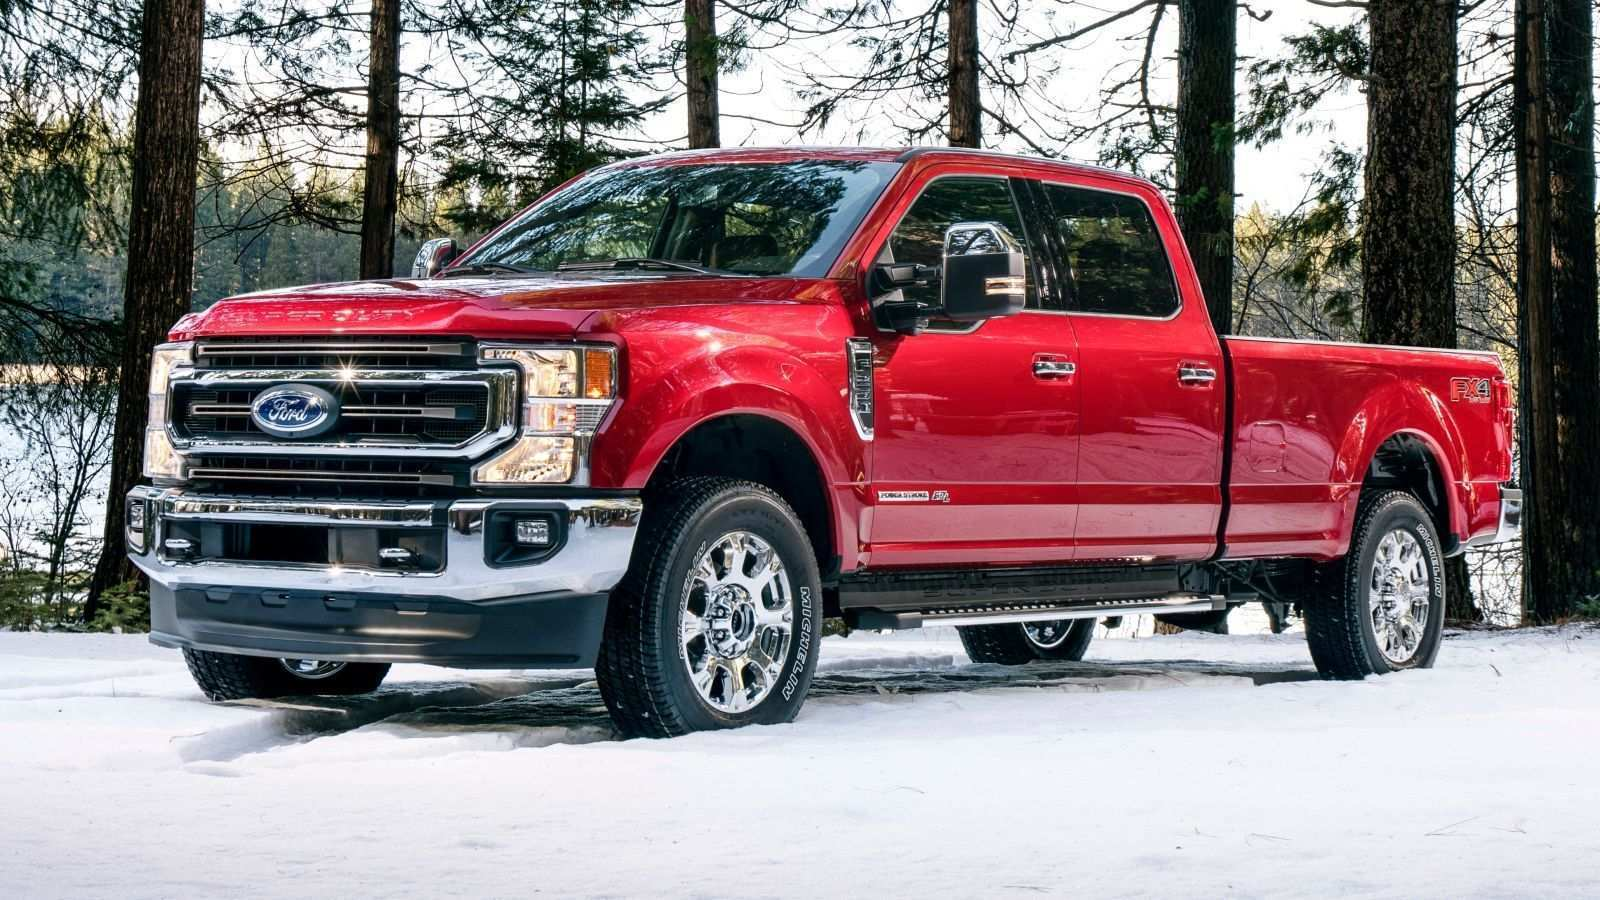 54 Best Review 2020 Ford 7 3 Wallpaper for 2020 Ford 7 3